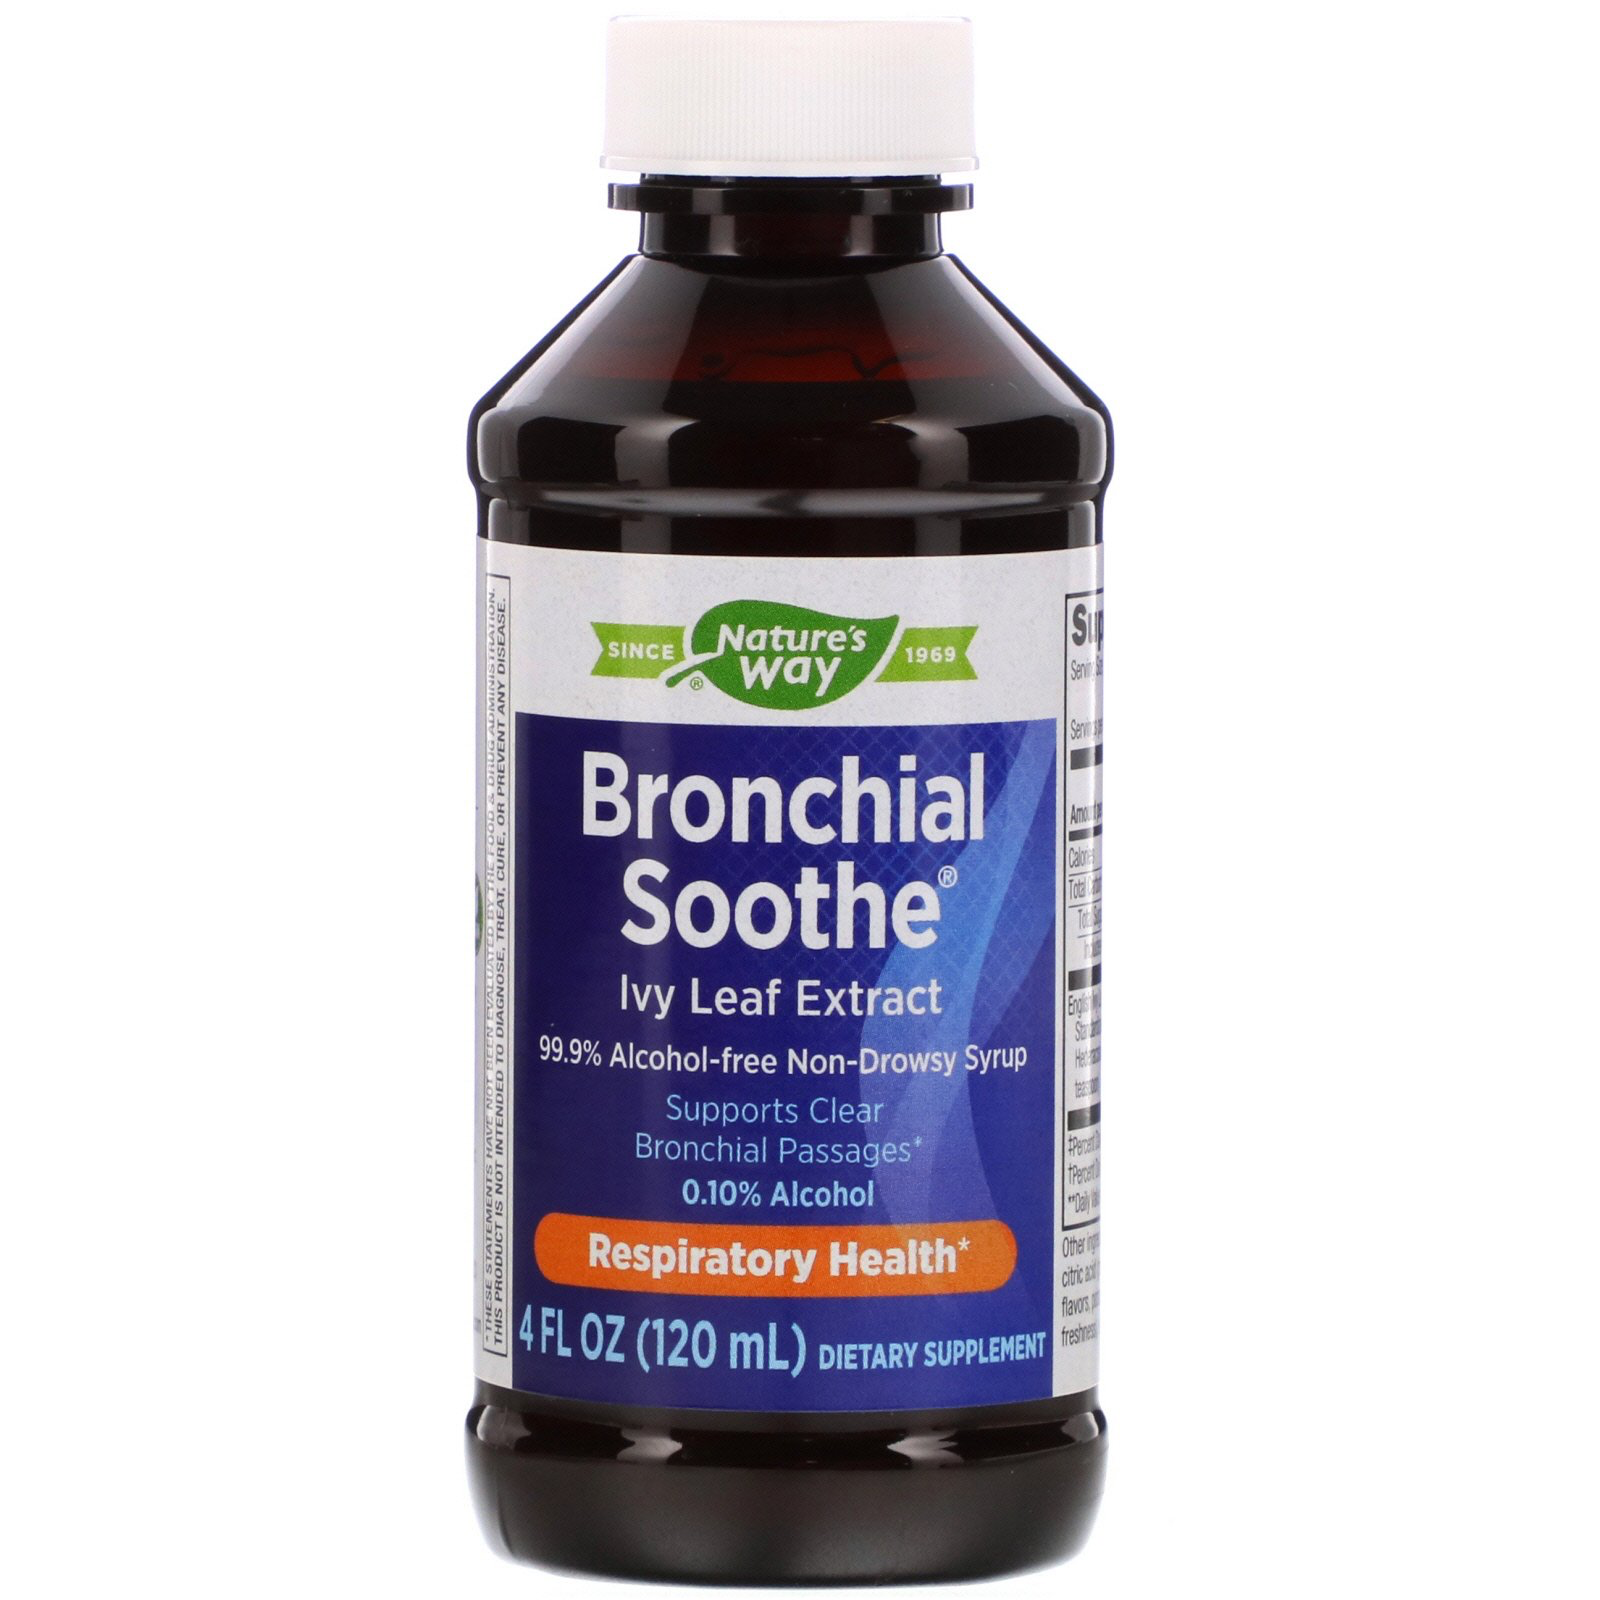 Bronchial Soothe Ivy Leaf 99.9% Alcohol-Free Non-Drowsy Syrup (Nature's Way)